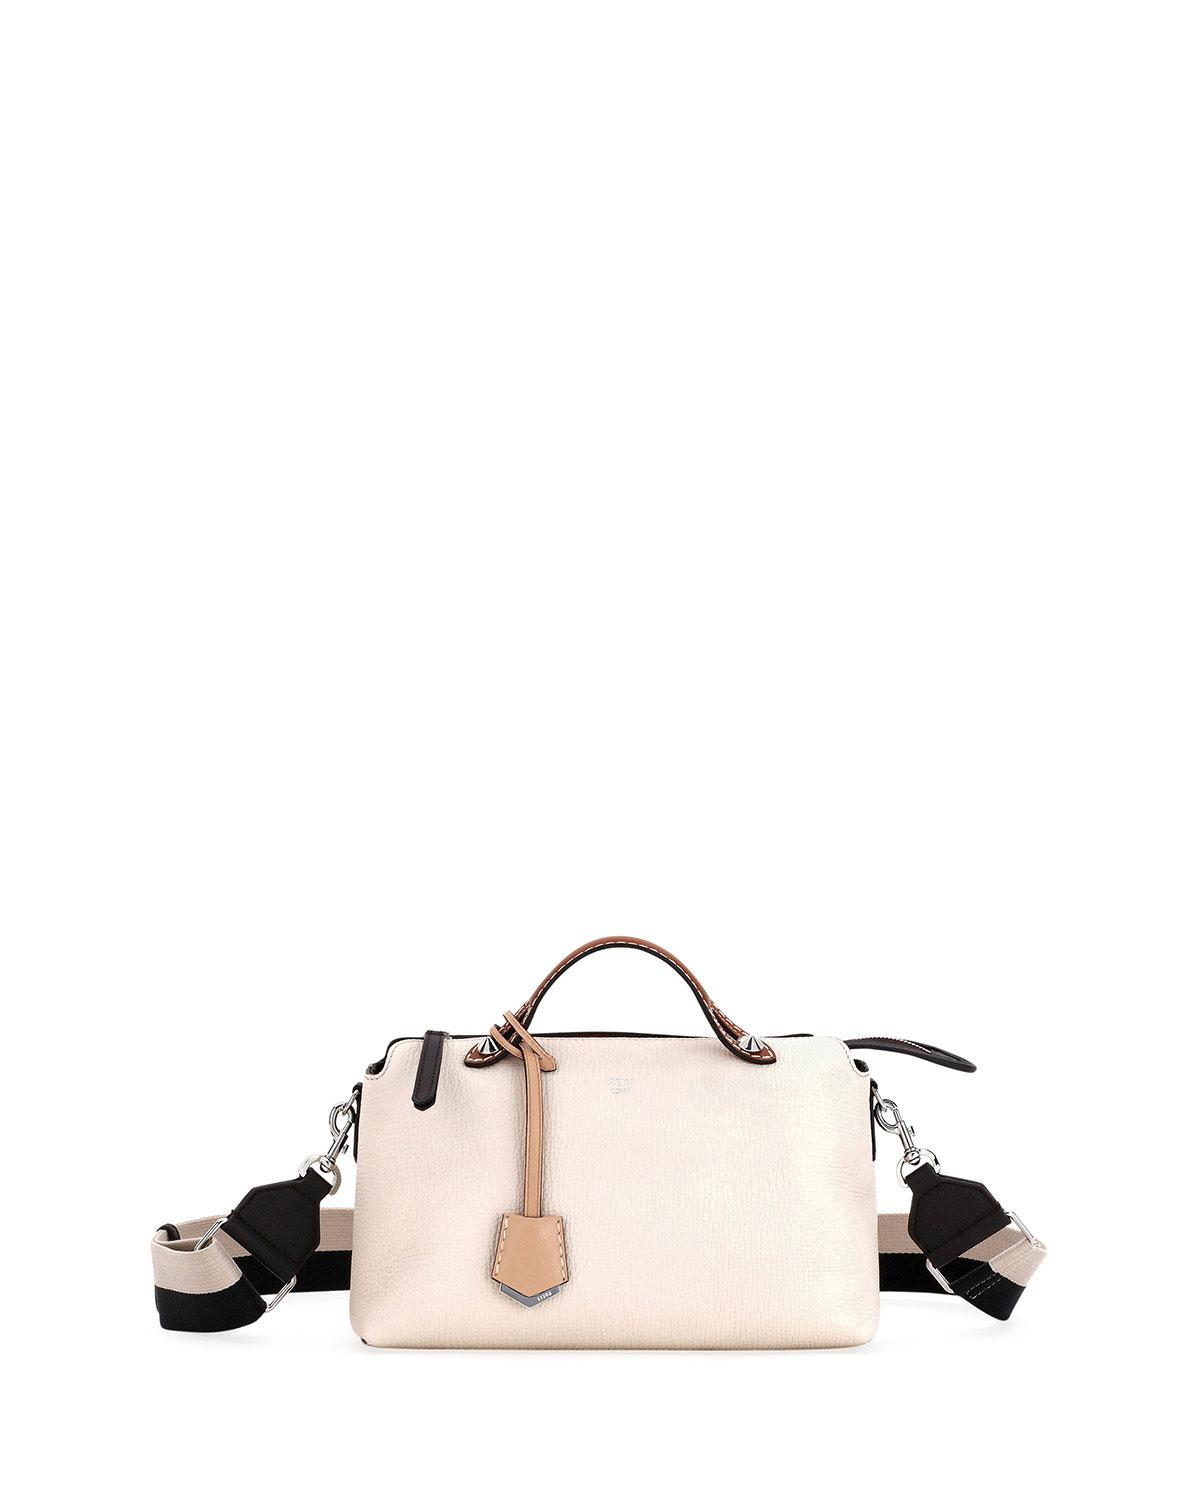 cfd24862640c Fendi By The Way Small Leather Shoulder Bag - Ivory